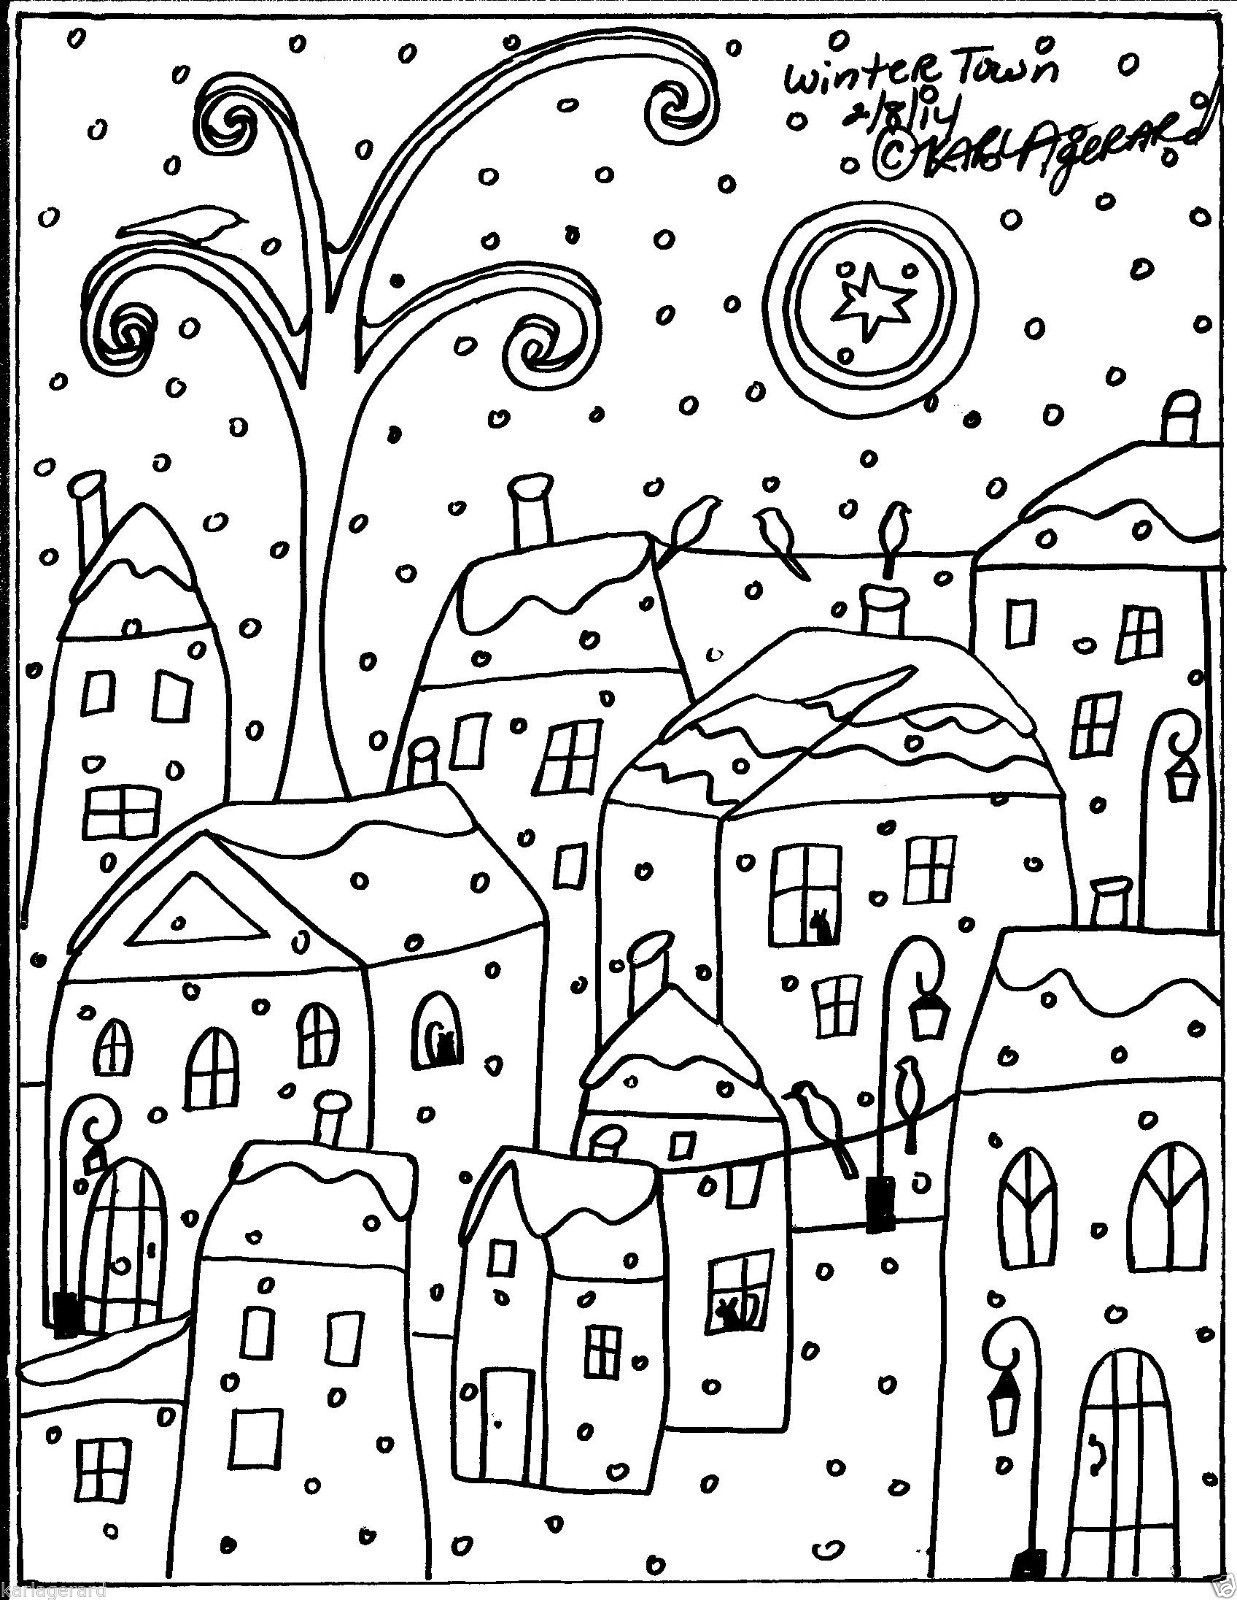 Winter Town By Karla Gerard | Coloring Pages | Rug Hooking